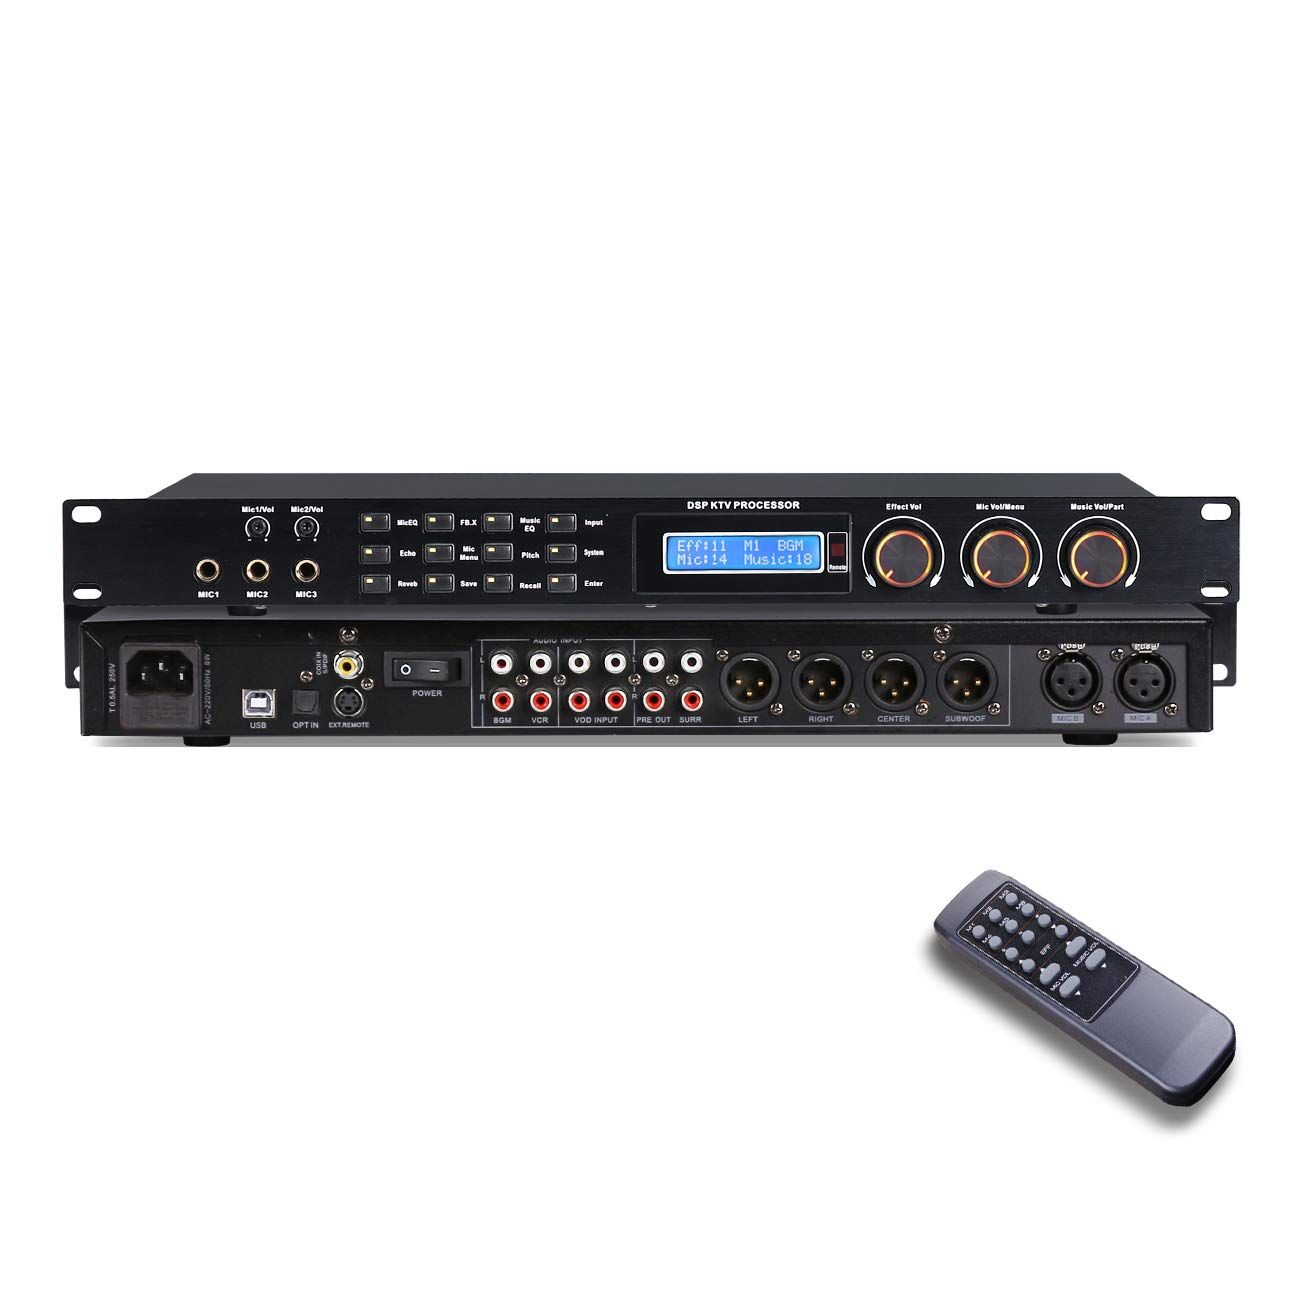 Depusheng REV7800 Karaoke Professional Digital Audio Processor Can Set Via A PC Interface Prevent Howling